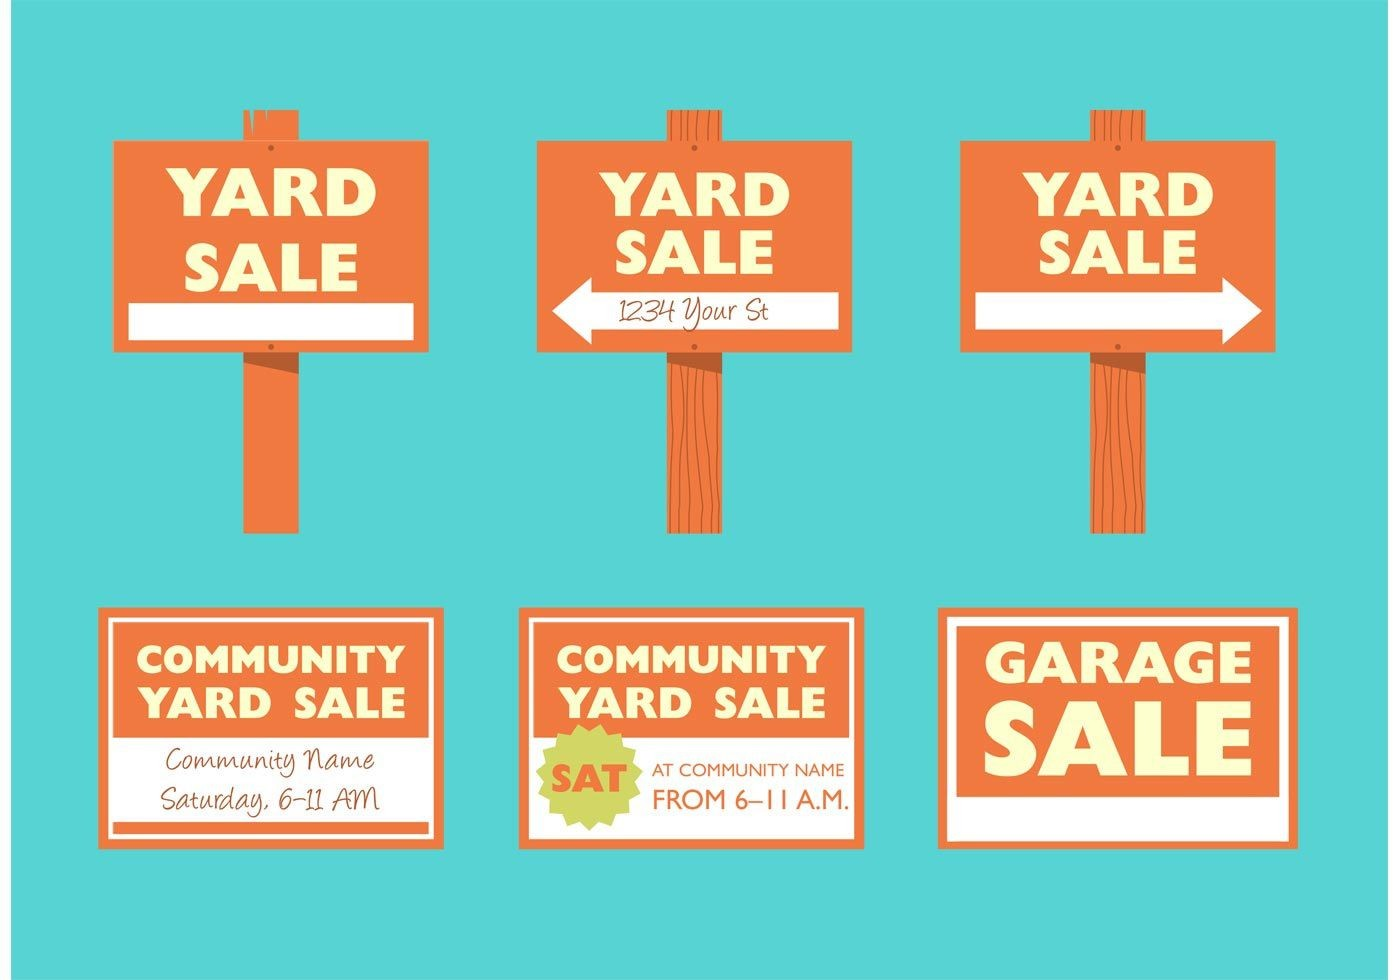 008 Staggering Garage Sale Sign Template Photo  Flyer Microsoft Word Community Yard Free Rummage1400